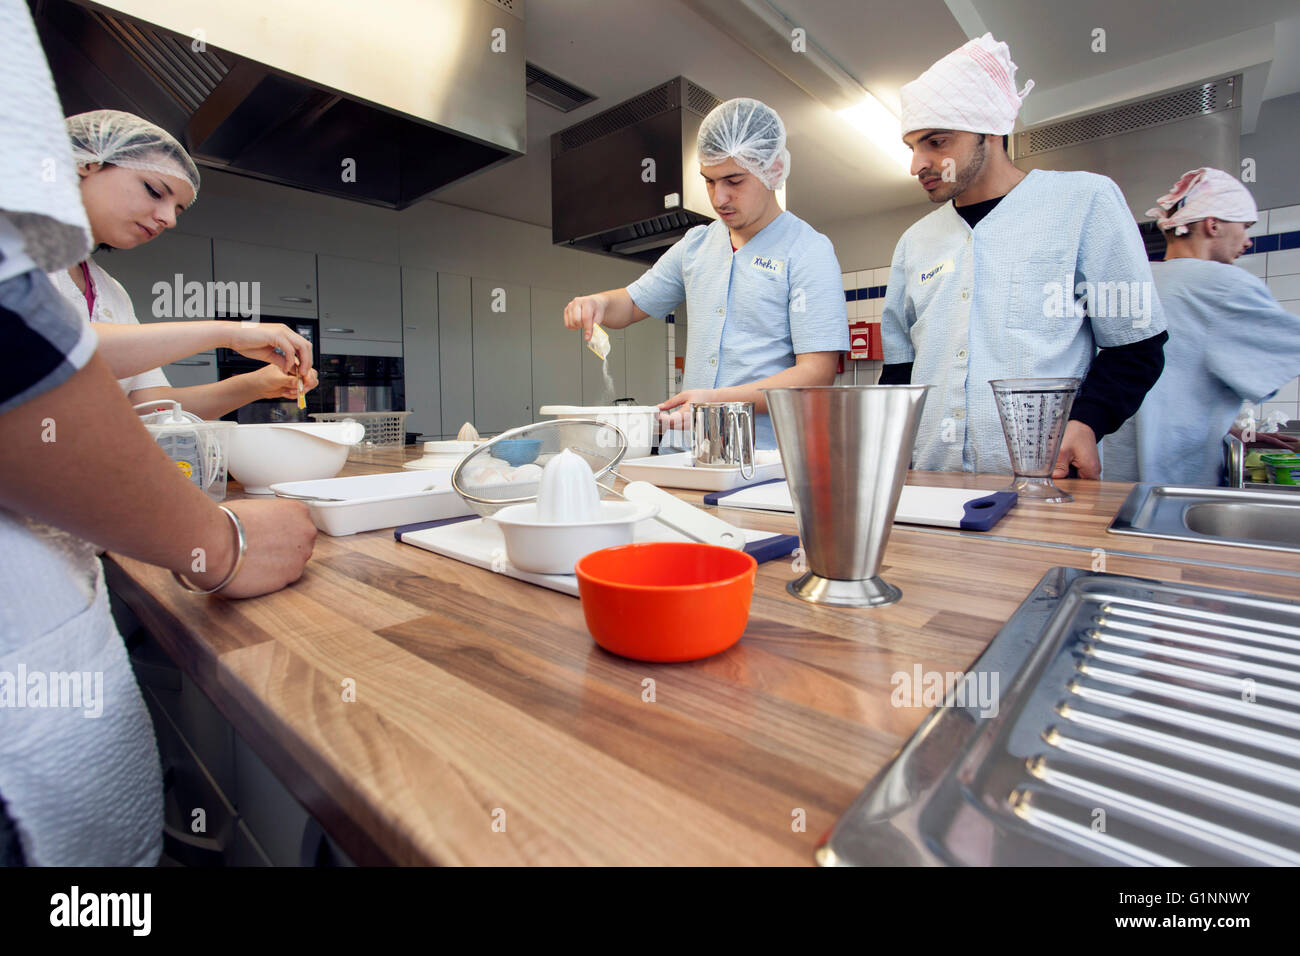 International school class learns how to cook and bake in the training kitchen. - Stock Image